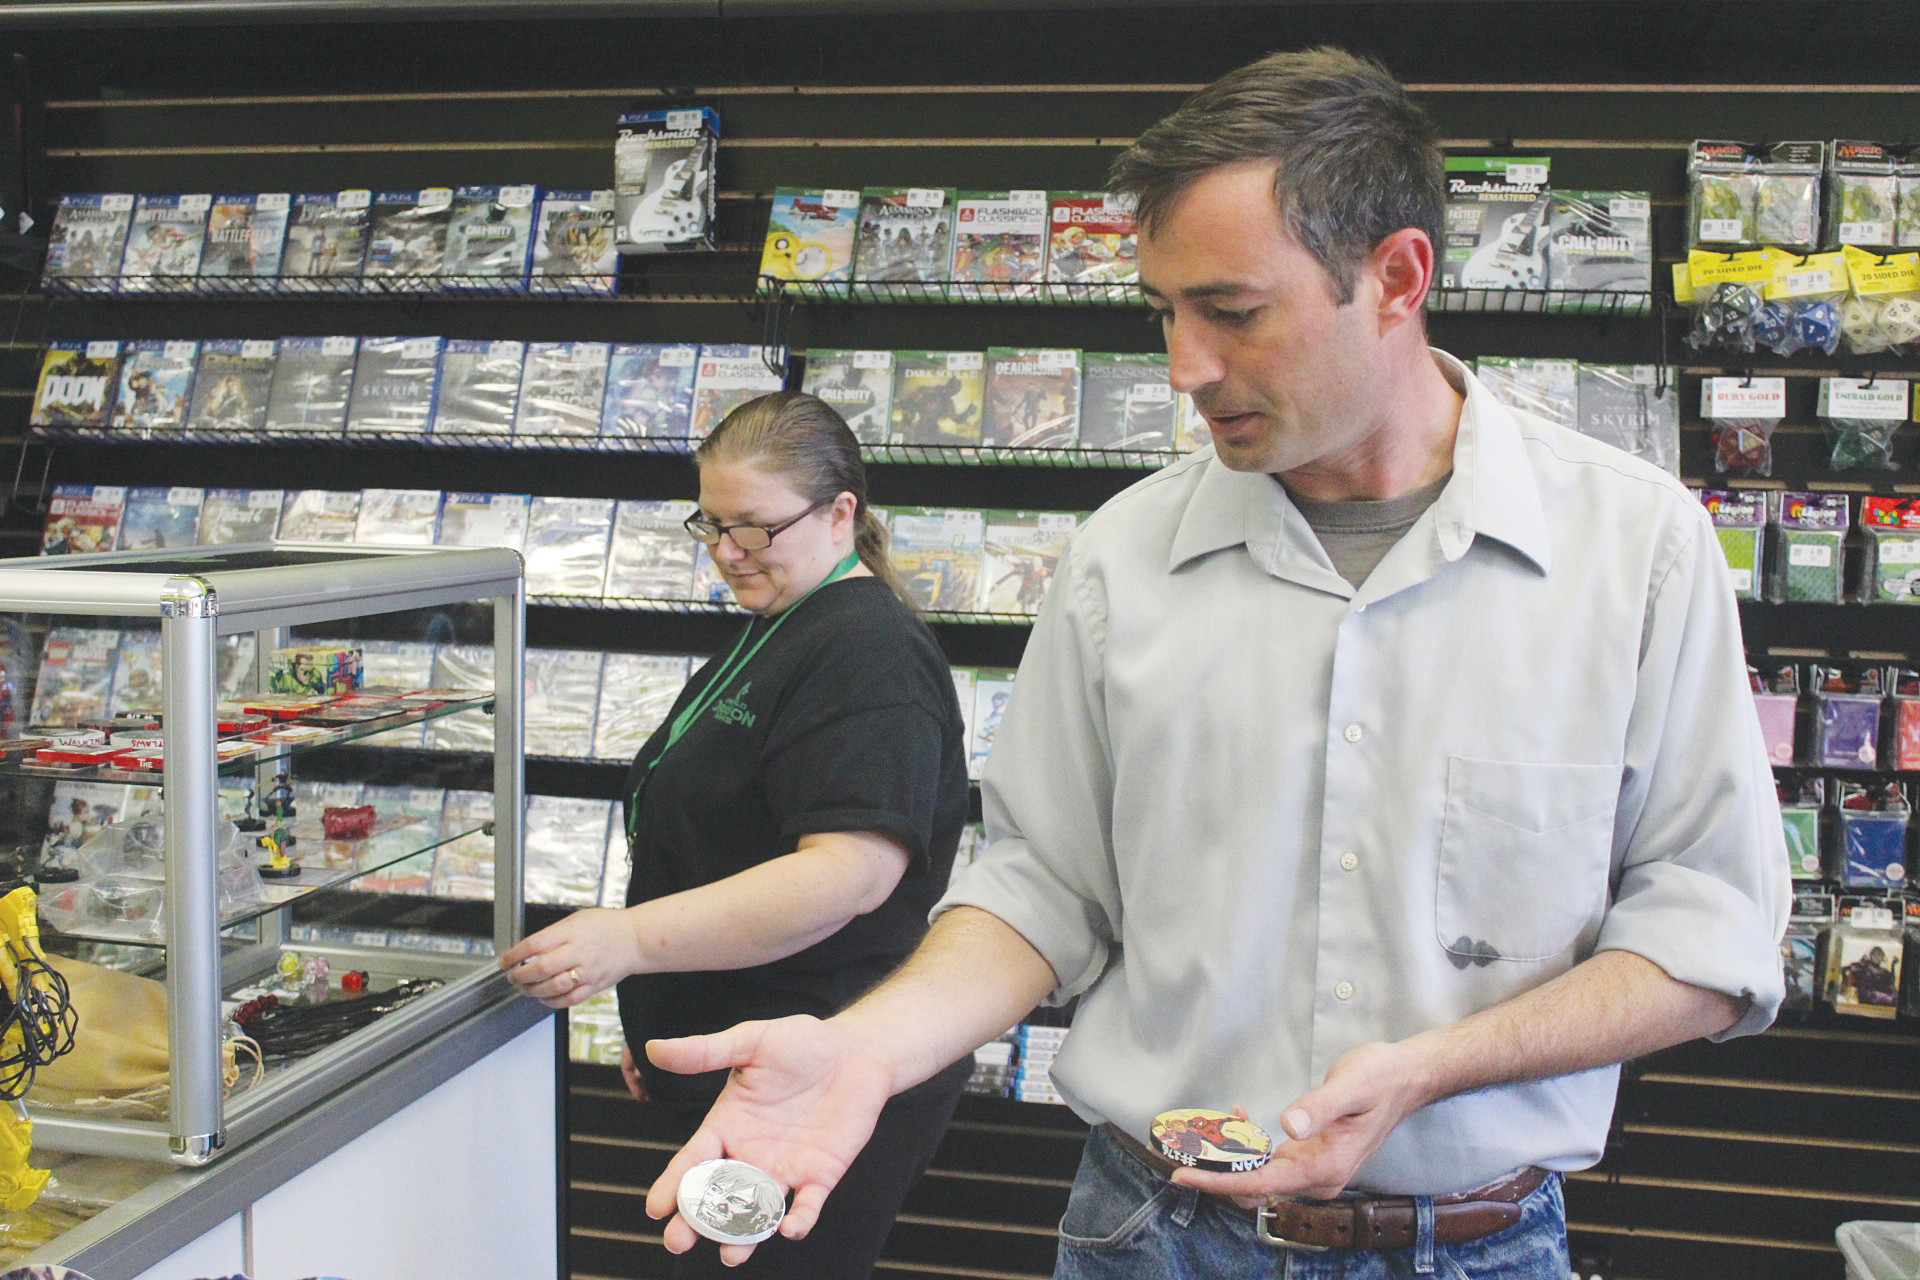 Hazel and Michael Bruce opened Emerald Dragon Games at the tail end of April to give area gamers something to look forward to other than a screen.